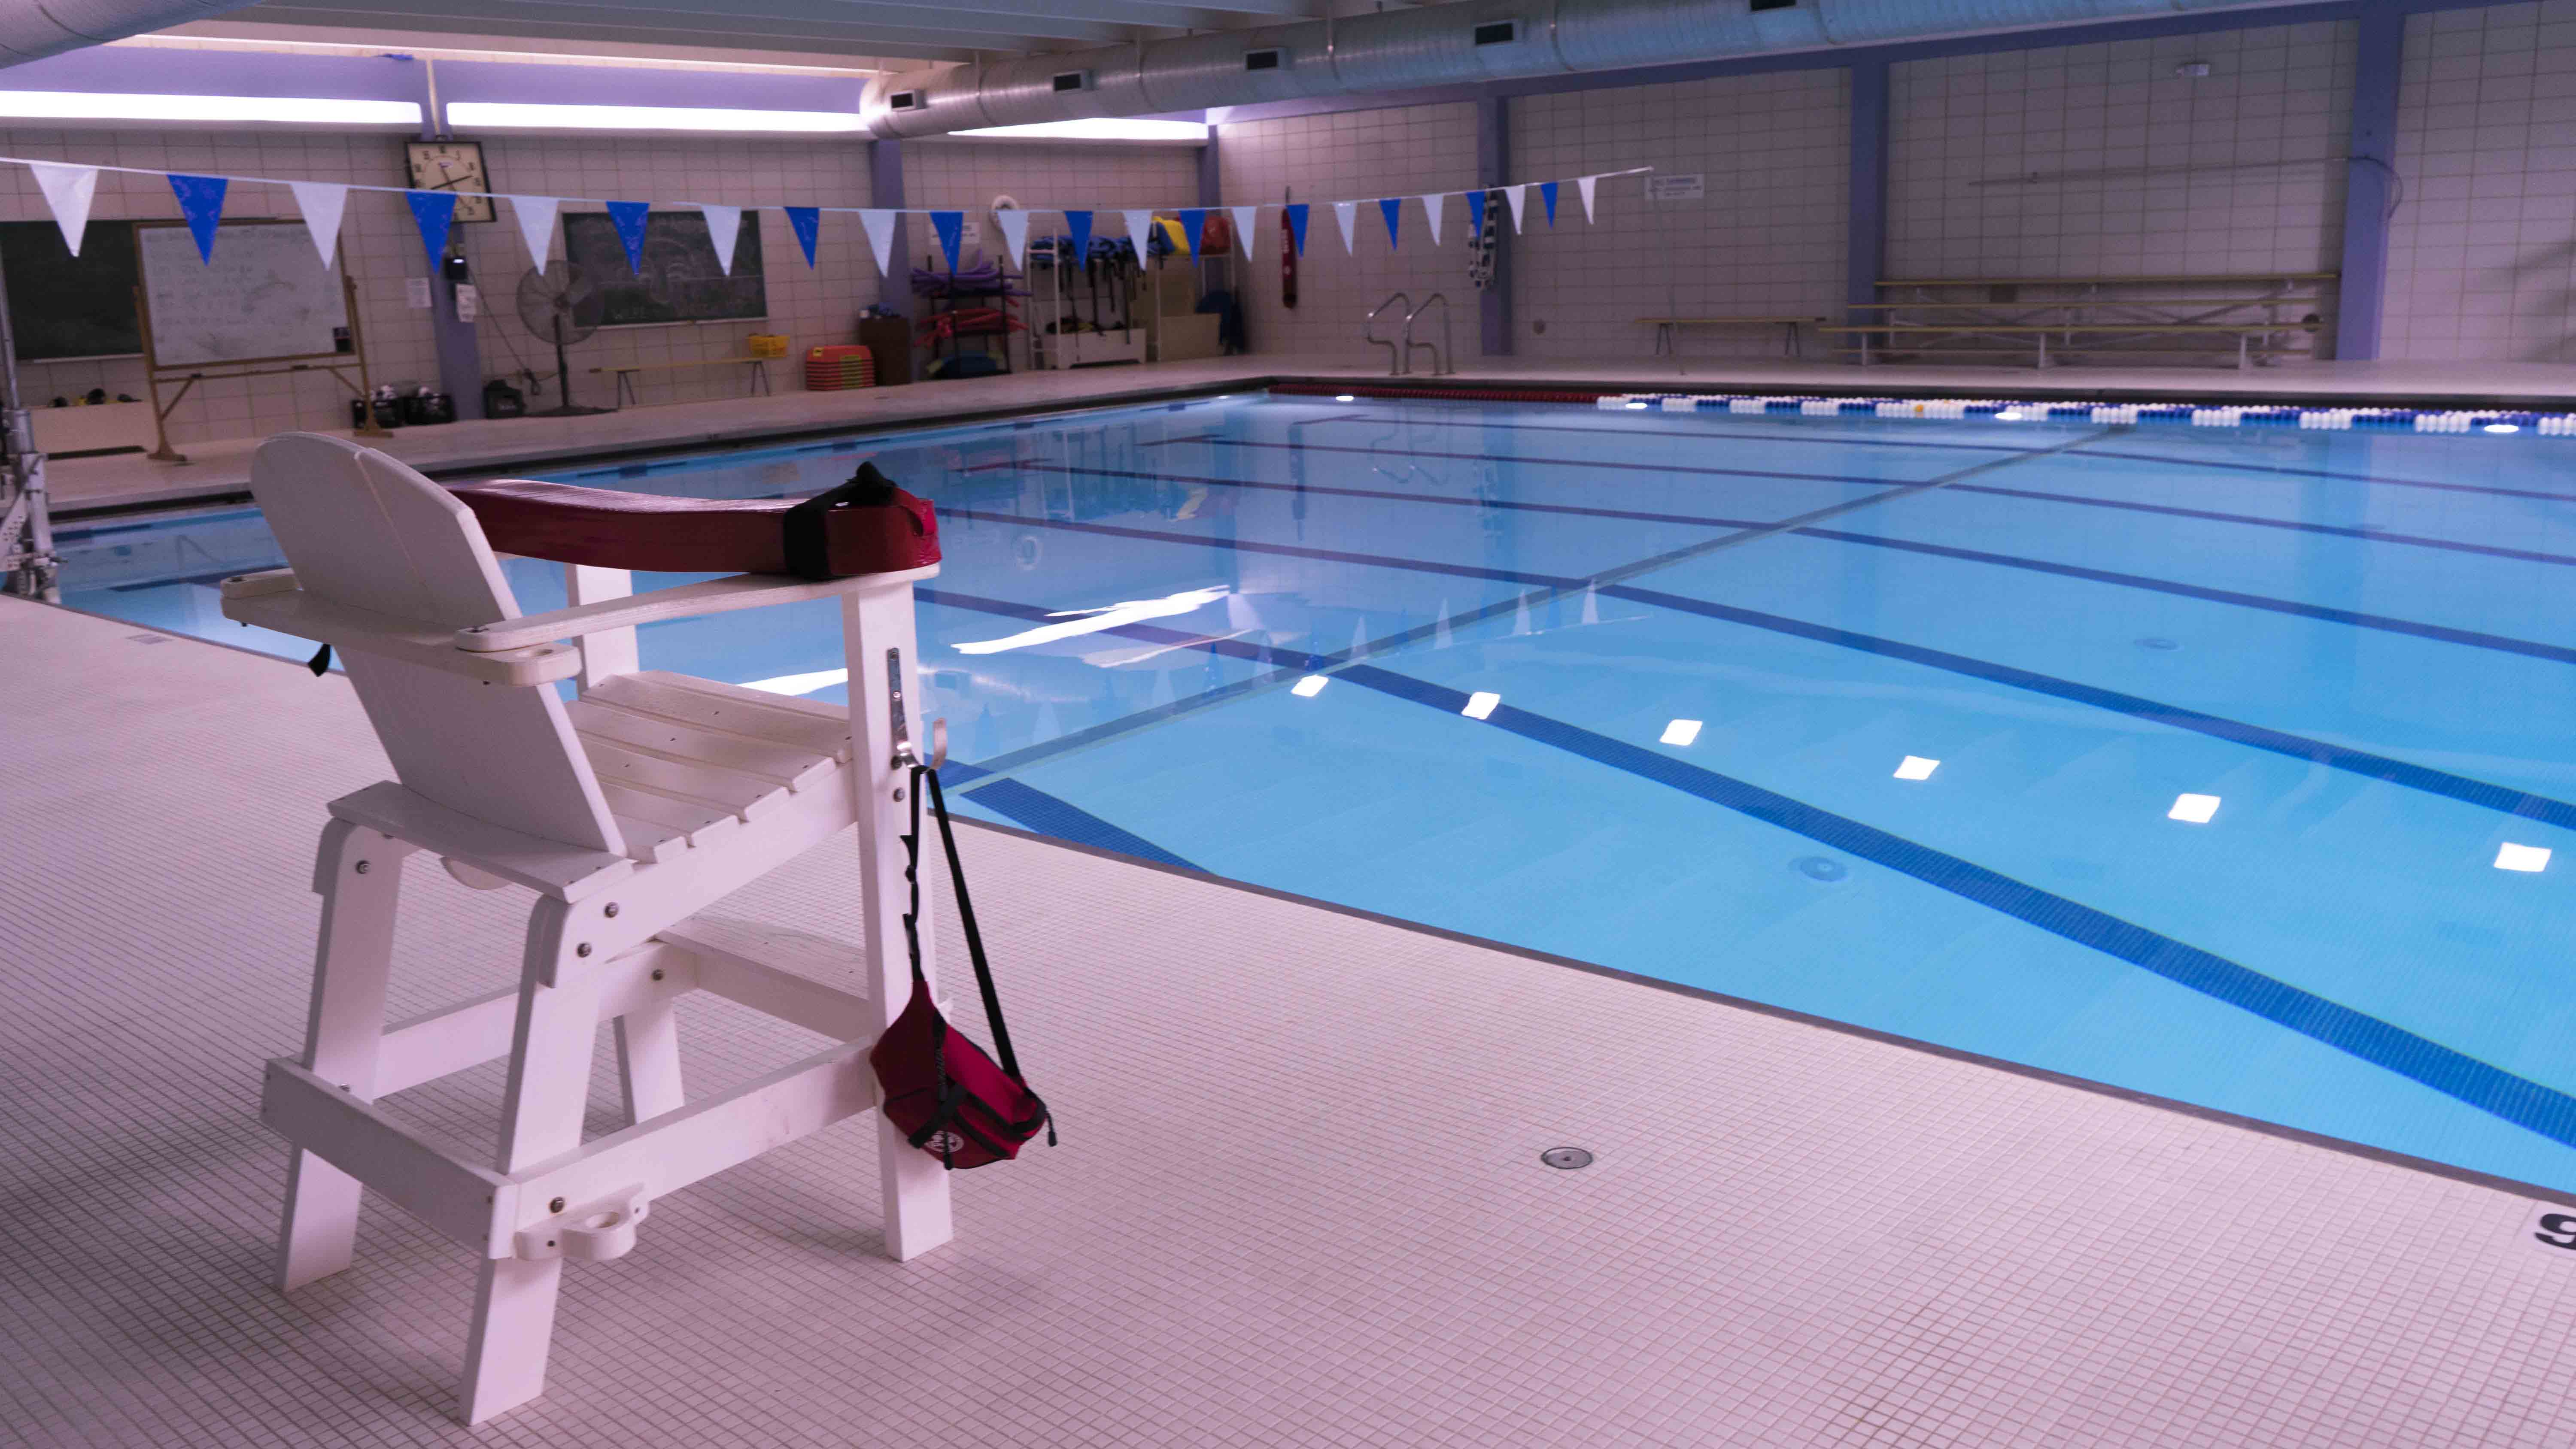 Closing the pool is a part of AACC's Facilities Master Plan to make way for a new health and sciences building.